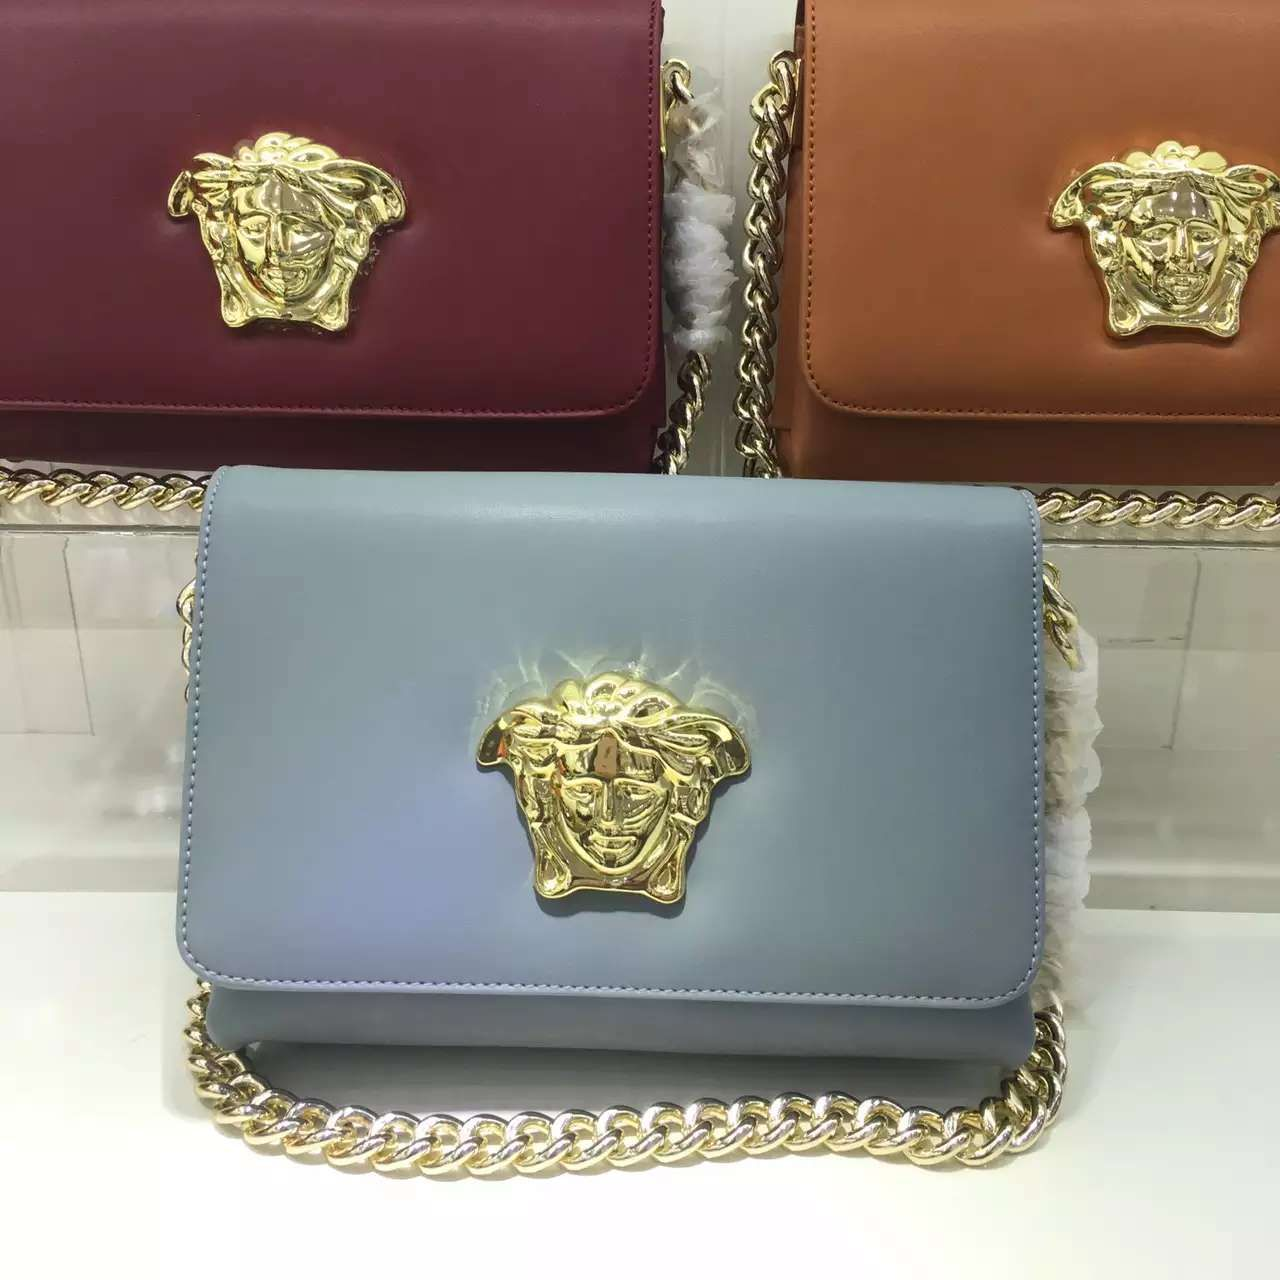 6c17a196aa new styles 28f59 3035f versace clutch id 63994forsale a yybags ...